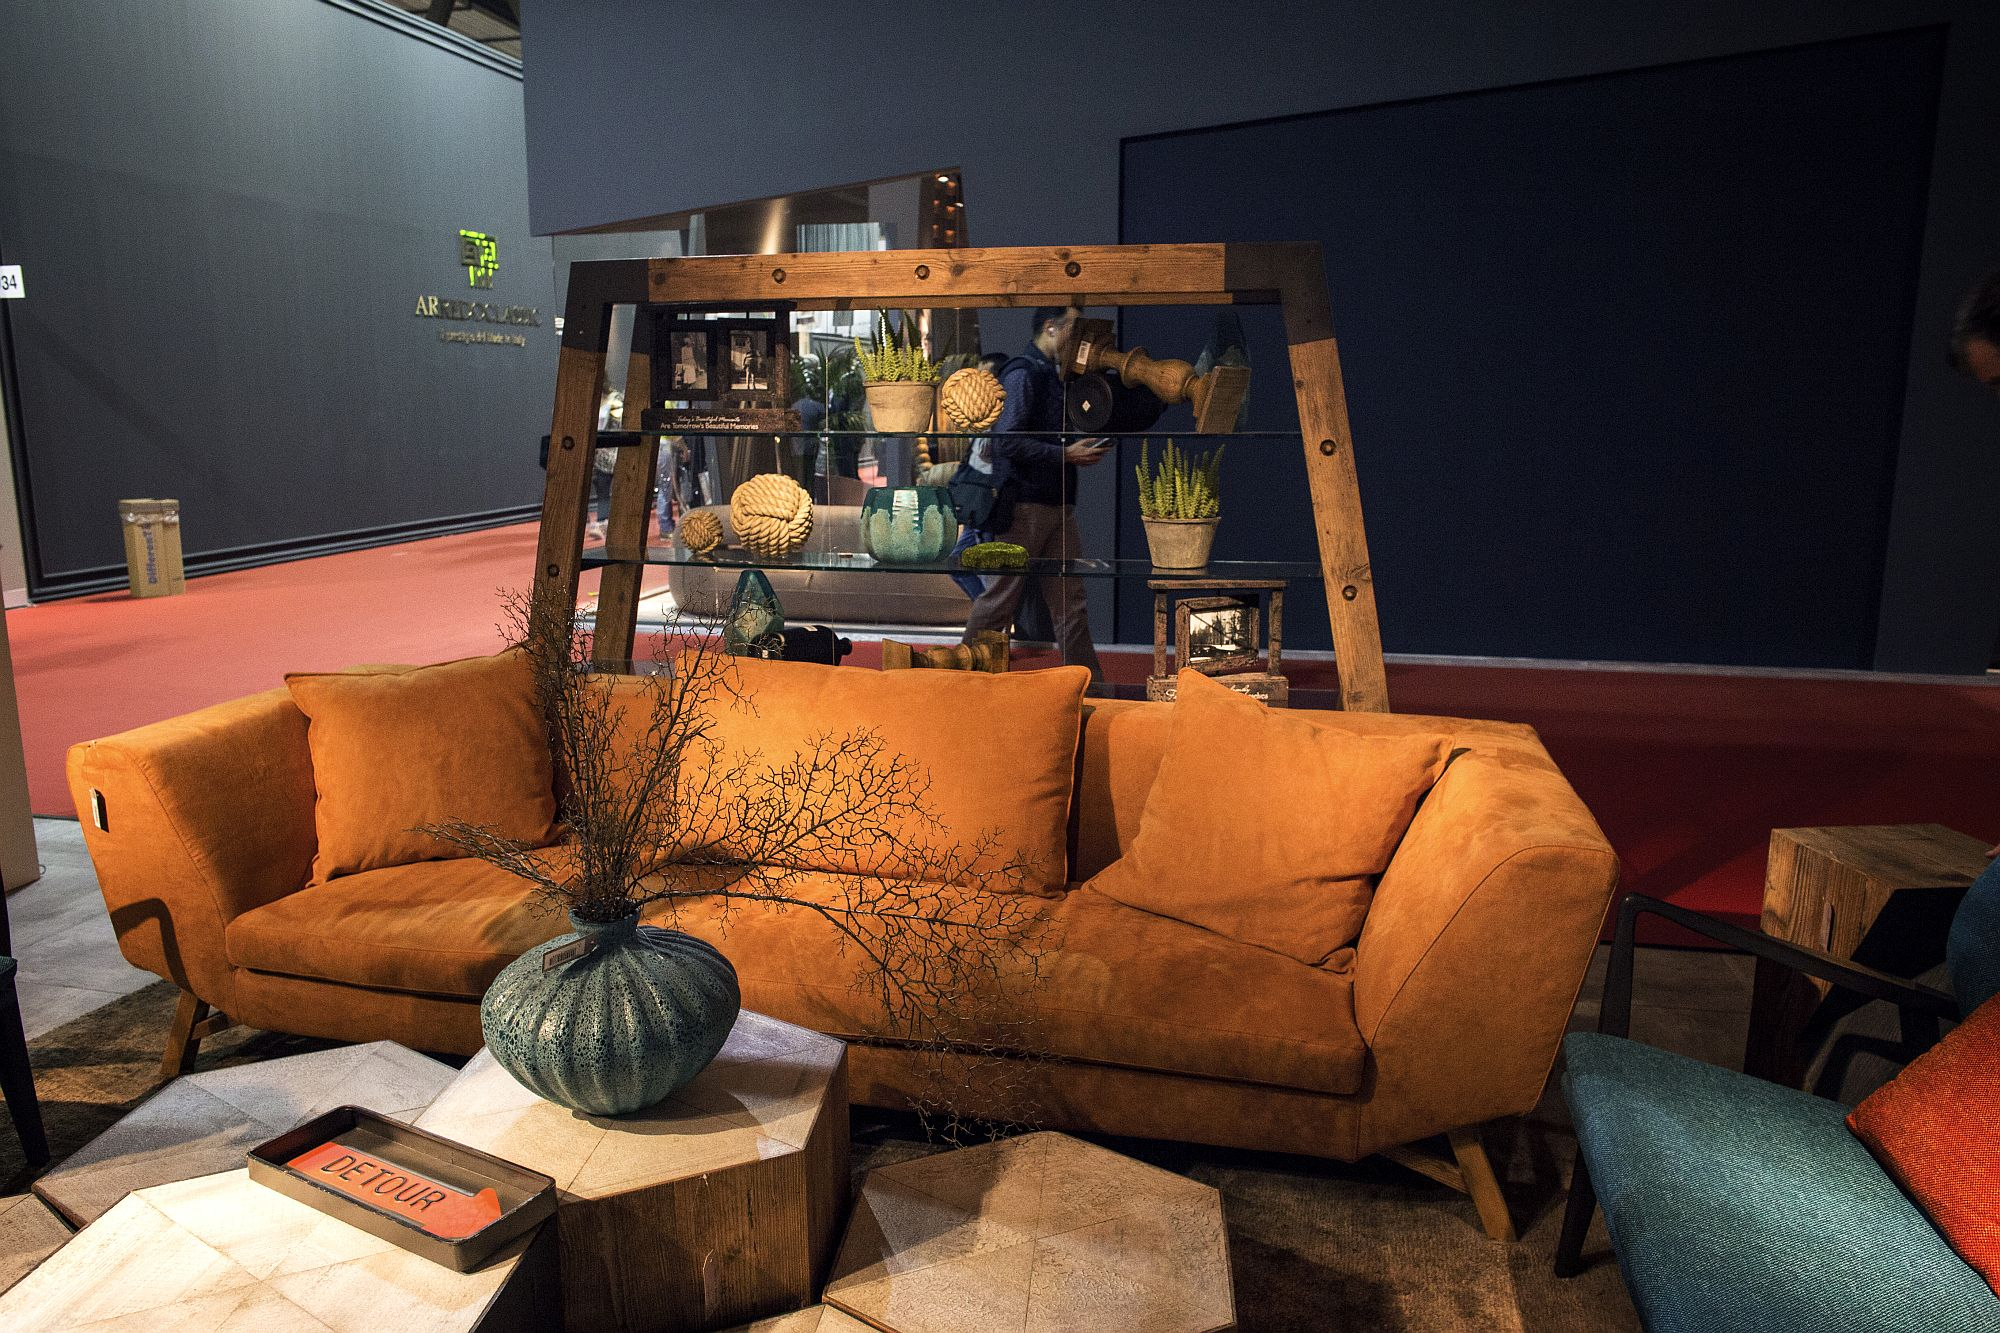 Decor in burnt orange and with matte finish feels far less overwhelming